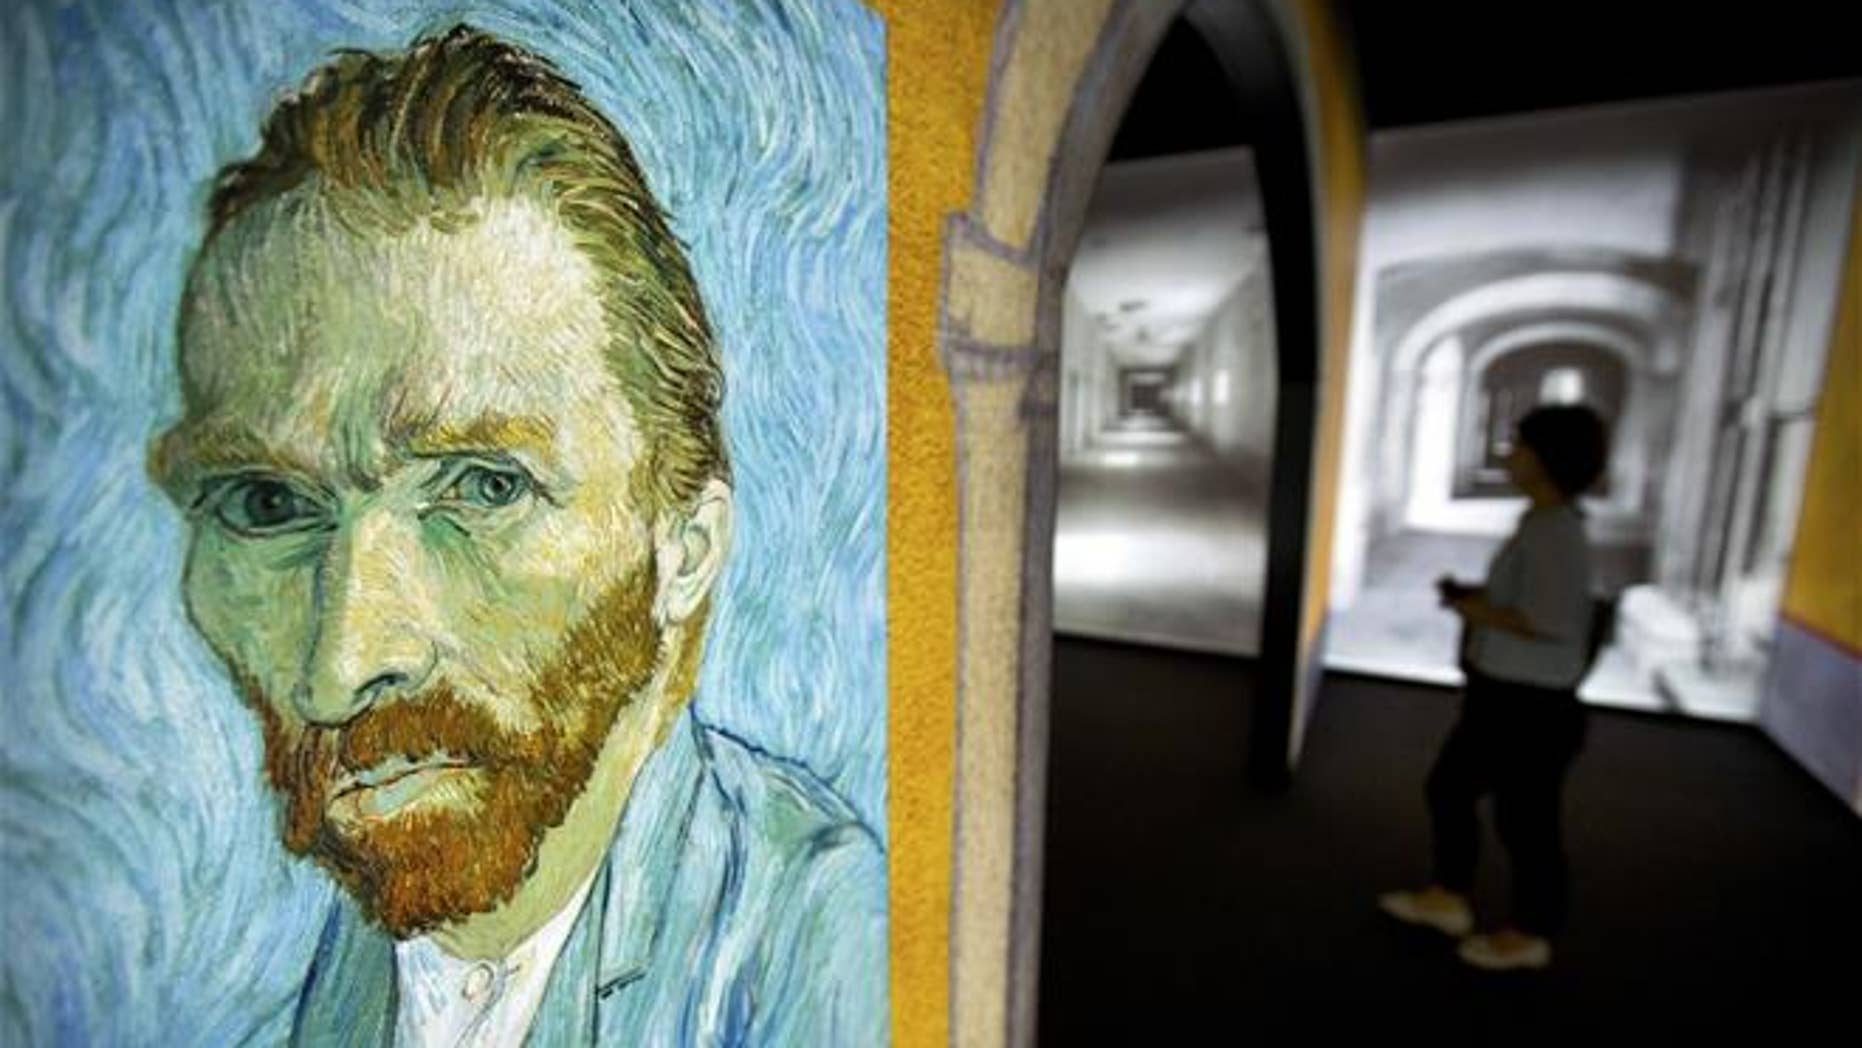 """A visitor walks past an image of Van Gogh's """"Self-Portrait"""" during a press event for the world premiere of the """"Meet Vincent Van Gogh"""" exhibit in Beijing on June 15, 2016."""